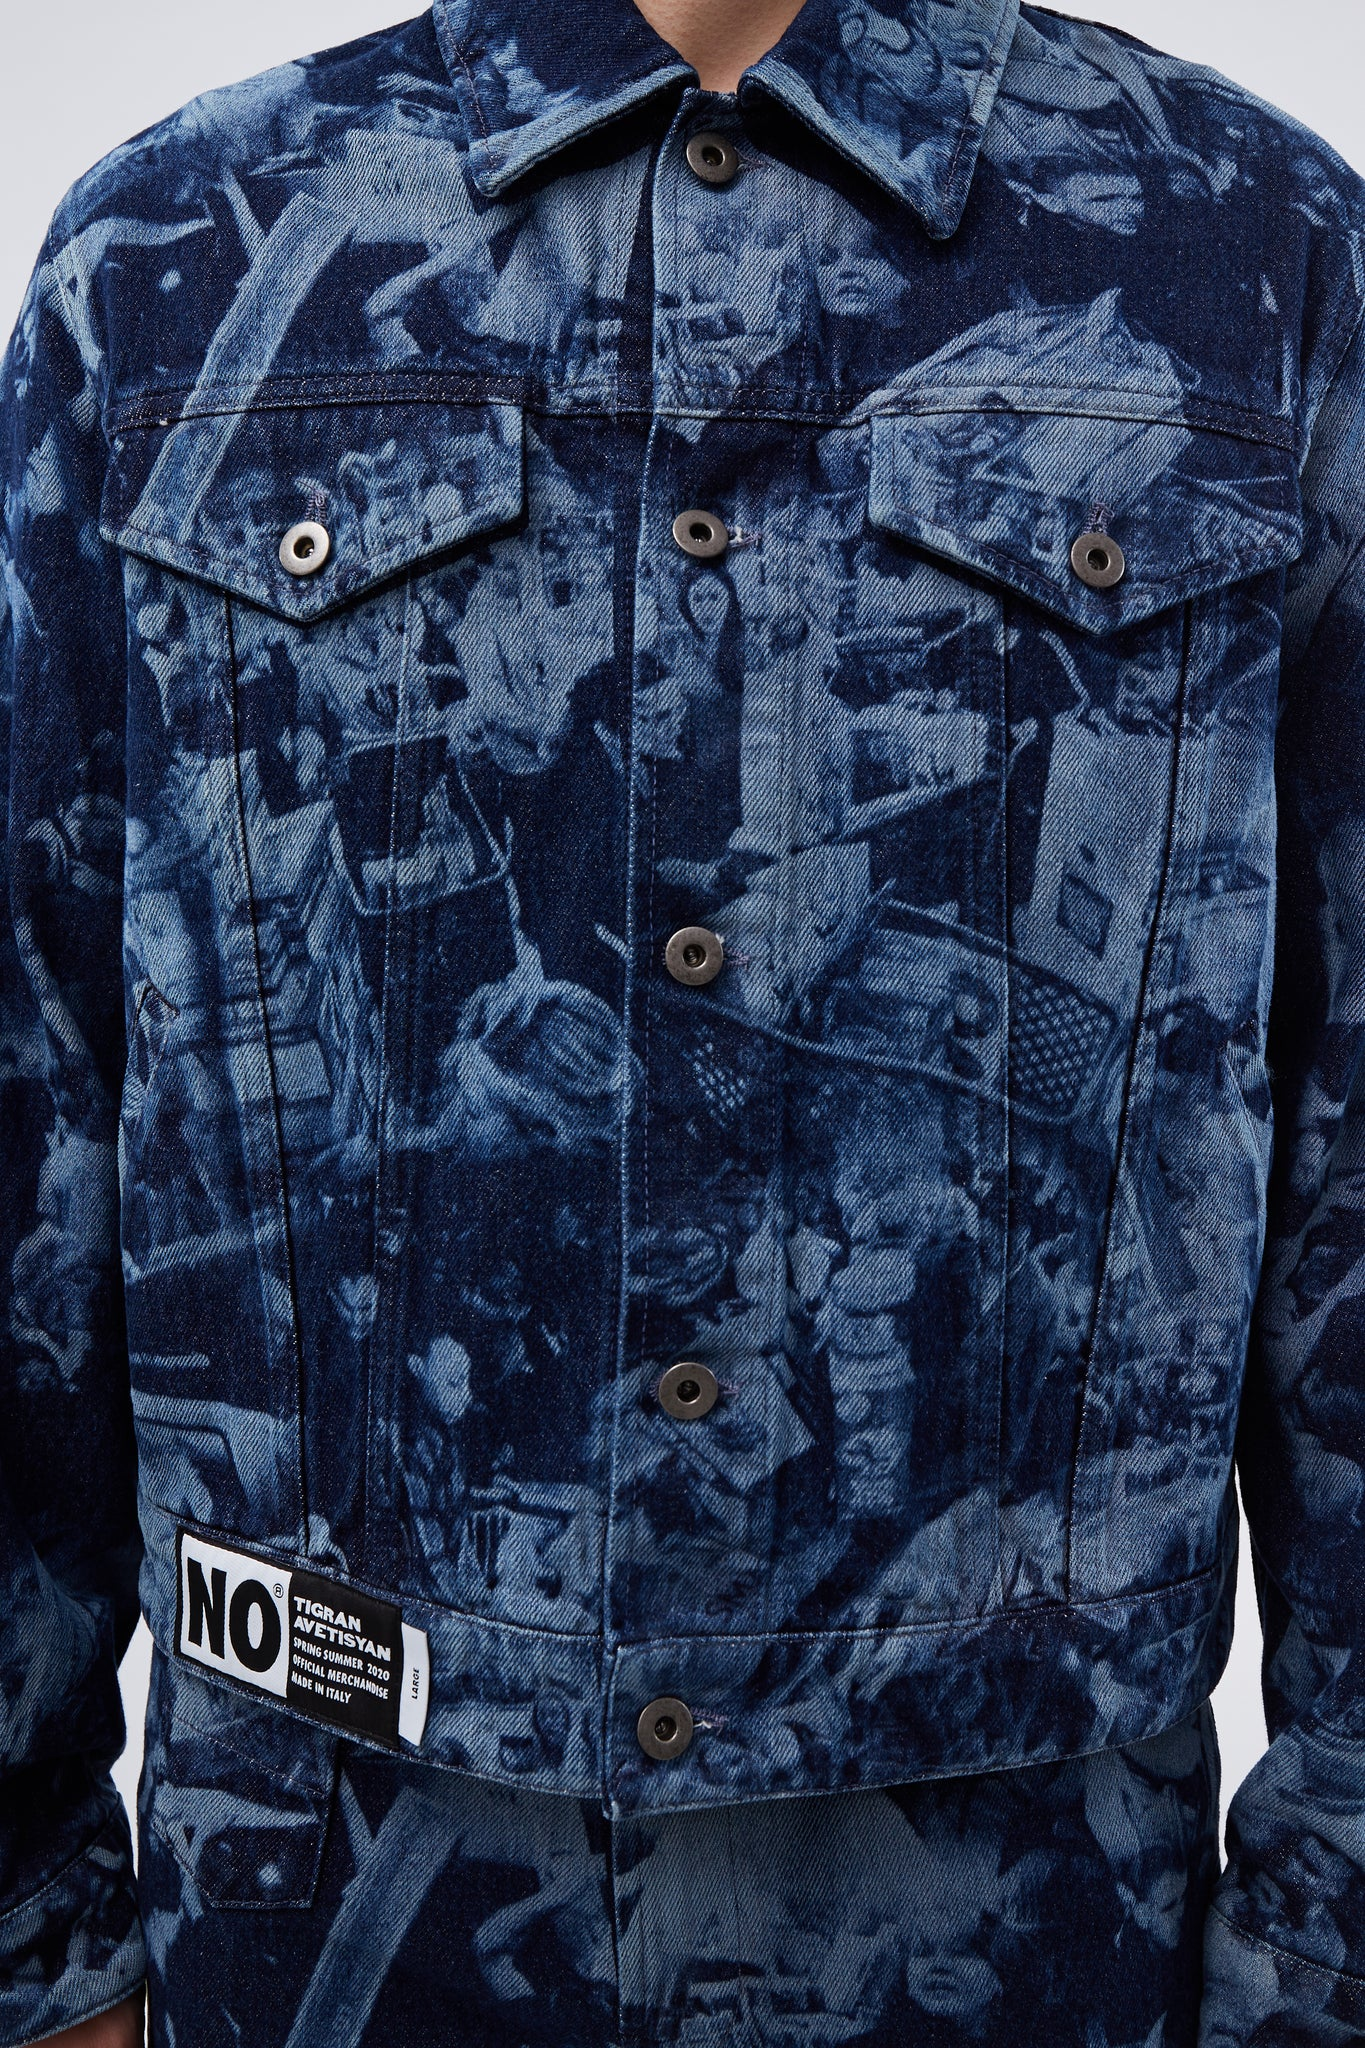 Blouson Malibu Denim Jacket